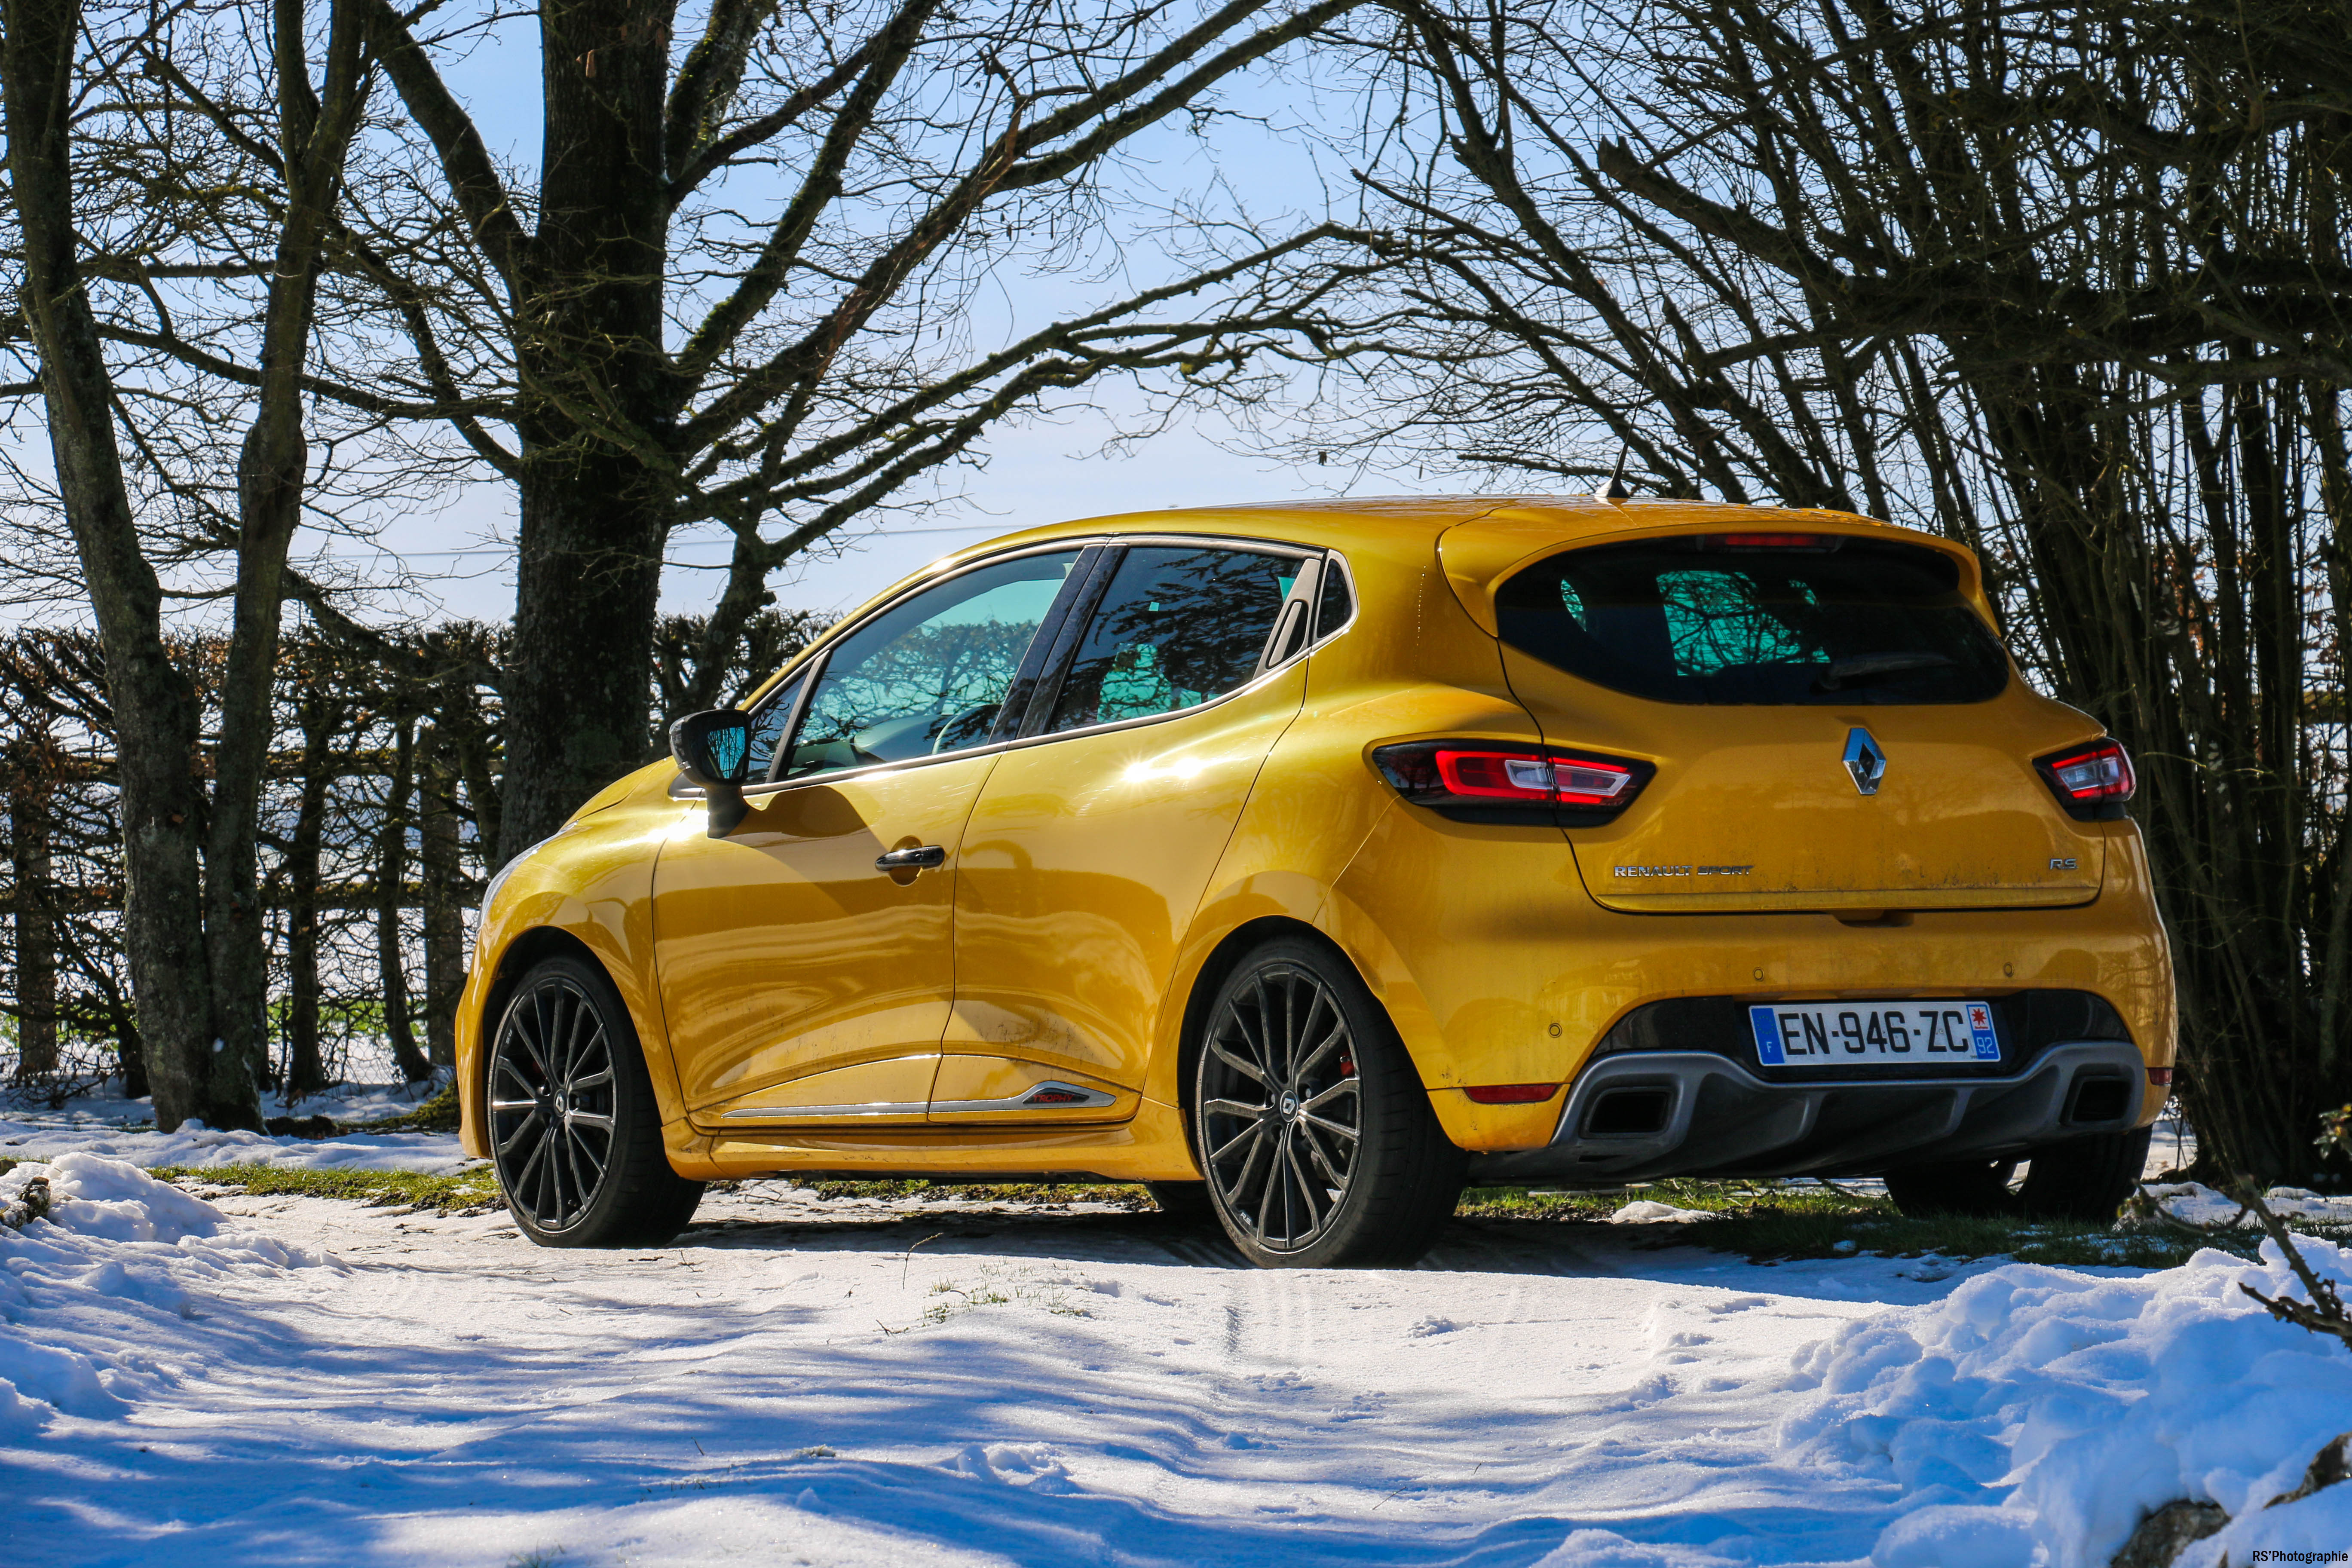 RenaultclioIVRSTrophy20-renault-clio-RS-trophy-arriere-rear-Arnaud Demasier-RSPhotographie